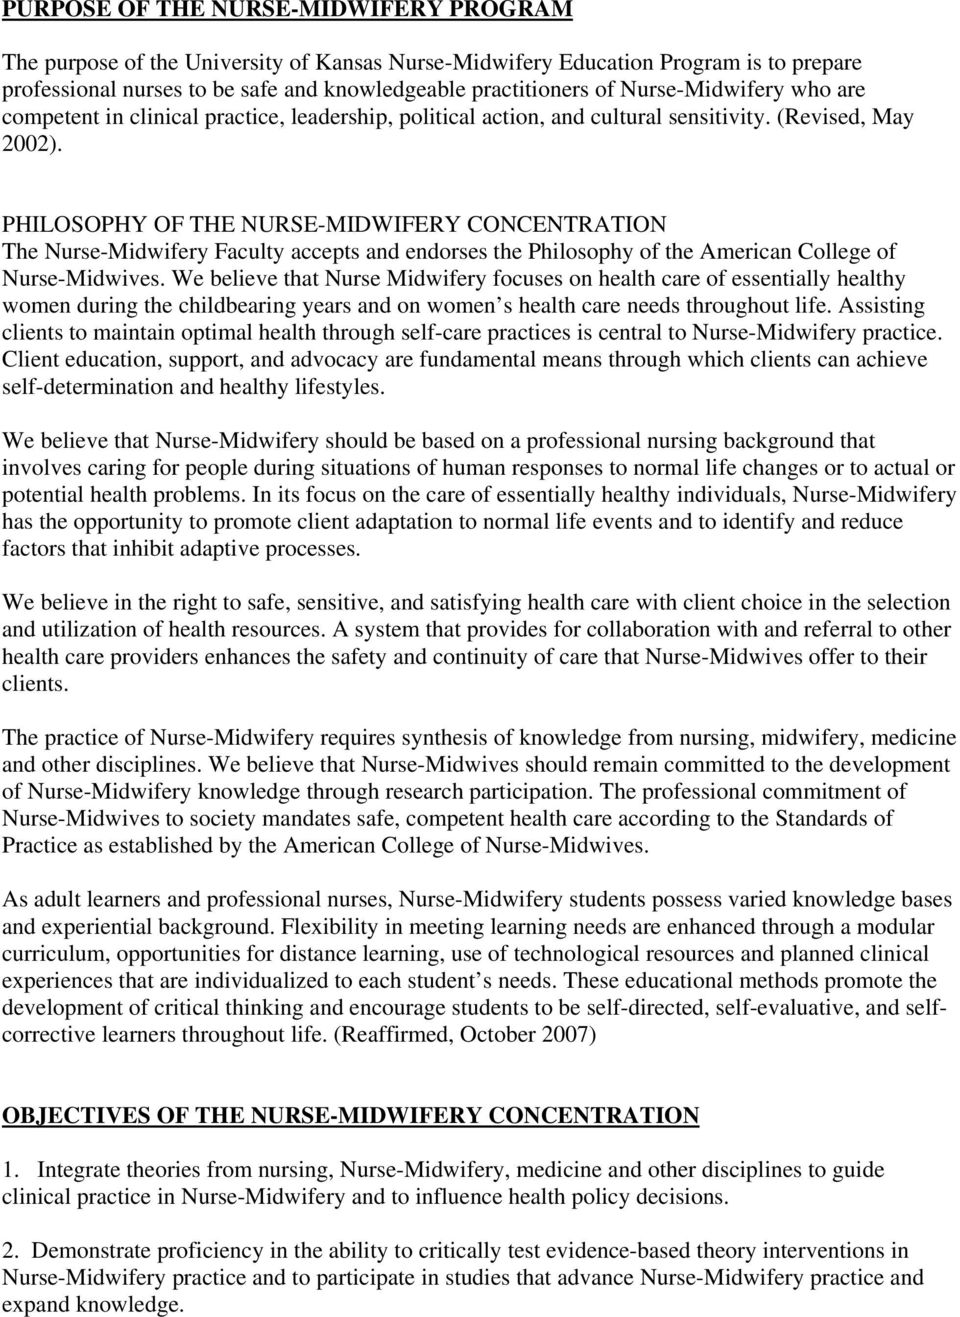 PHILOSOPHY OF THE NURSE-MIDWIFERY CONCENTRATION The Nurse-Midwifery Faculty accepts and endorses the Philosophy of the American College of Nurse-Midwives.